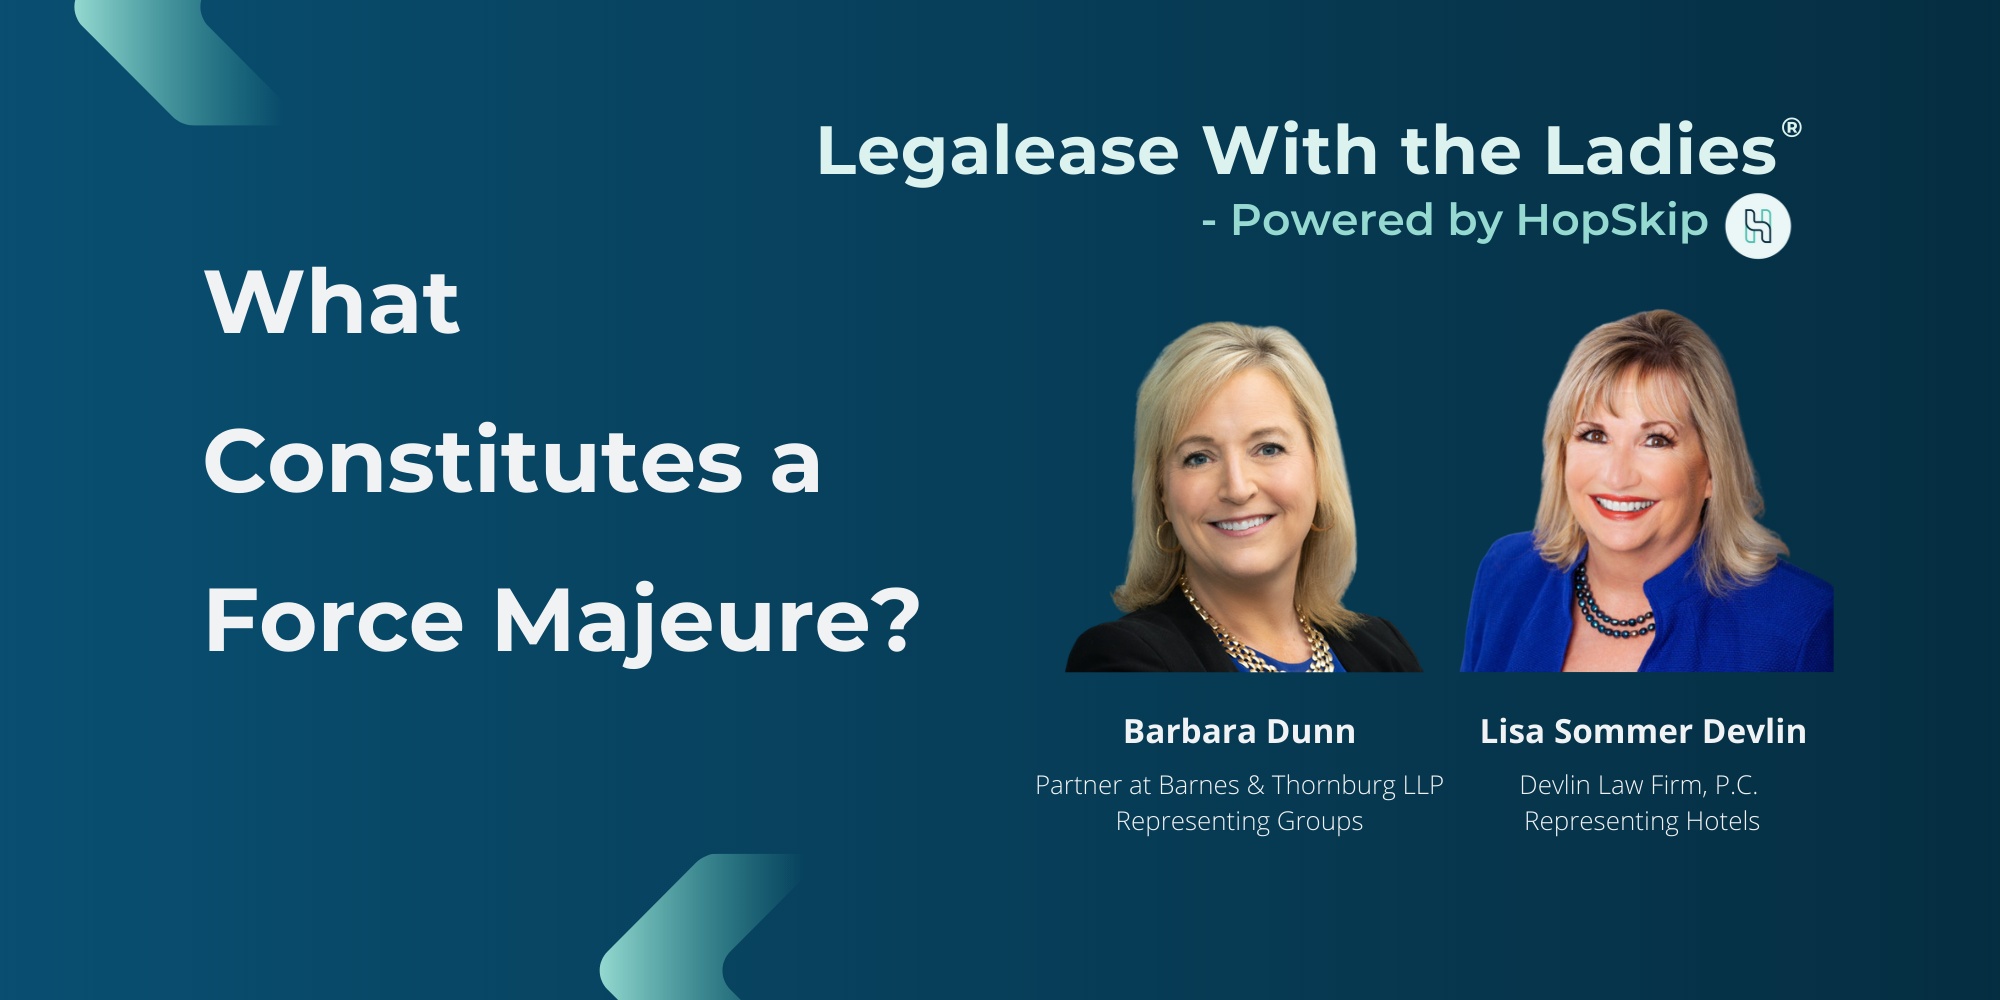 Barbara Dunn and Lisa Sommer Devlin.  Legalease With the Ladies- Powered by HopSkip